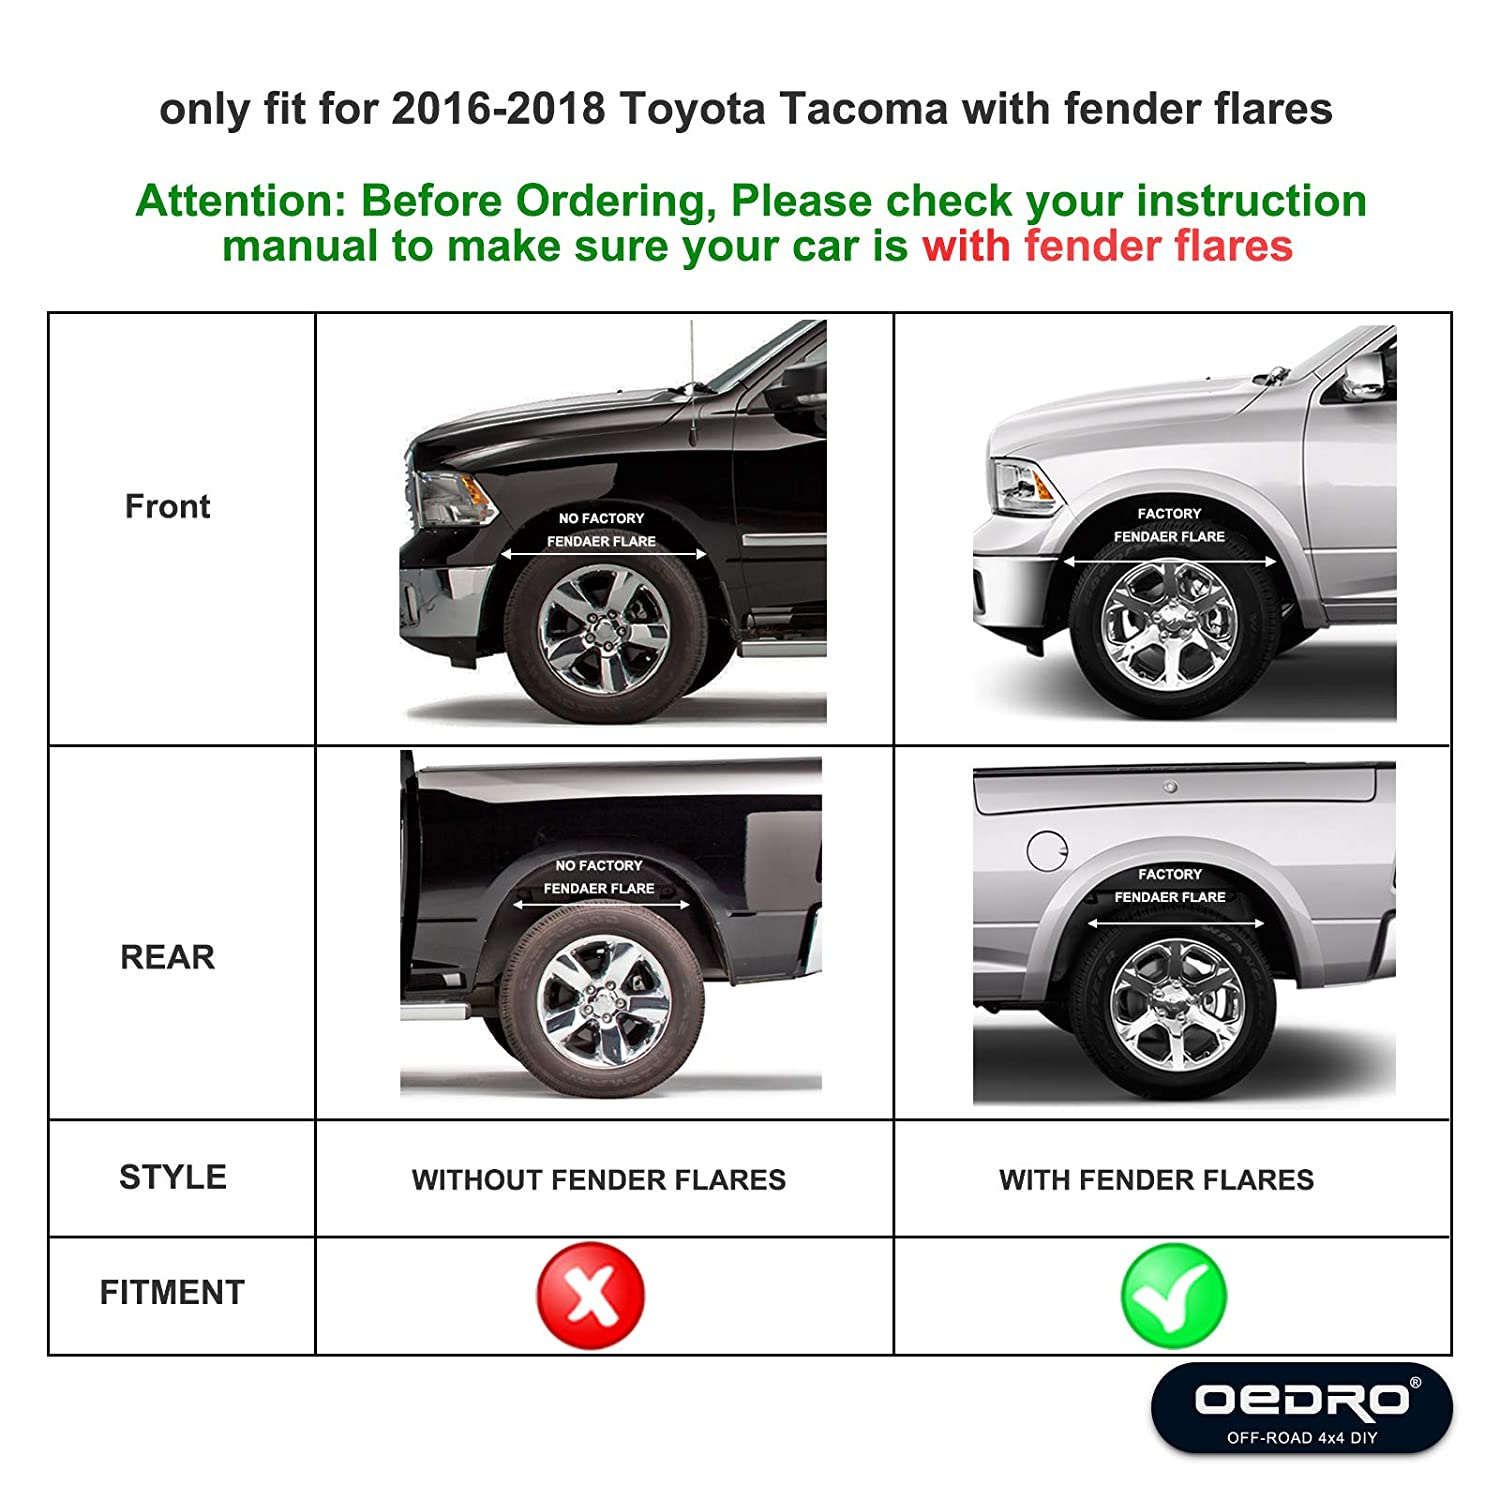 Toyota Tacoma 2015-2018 Service Manual: Rear Right Sensor Malfunction (C1AE9)